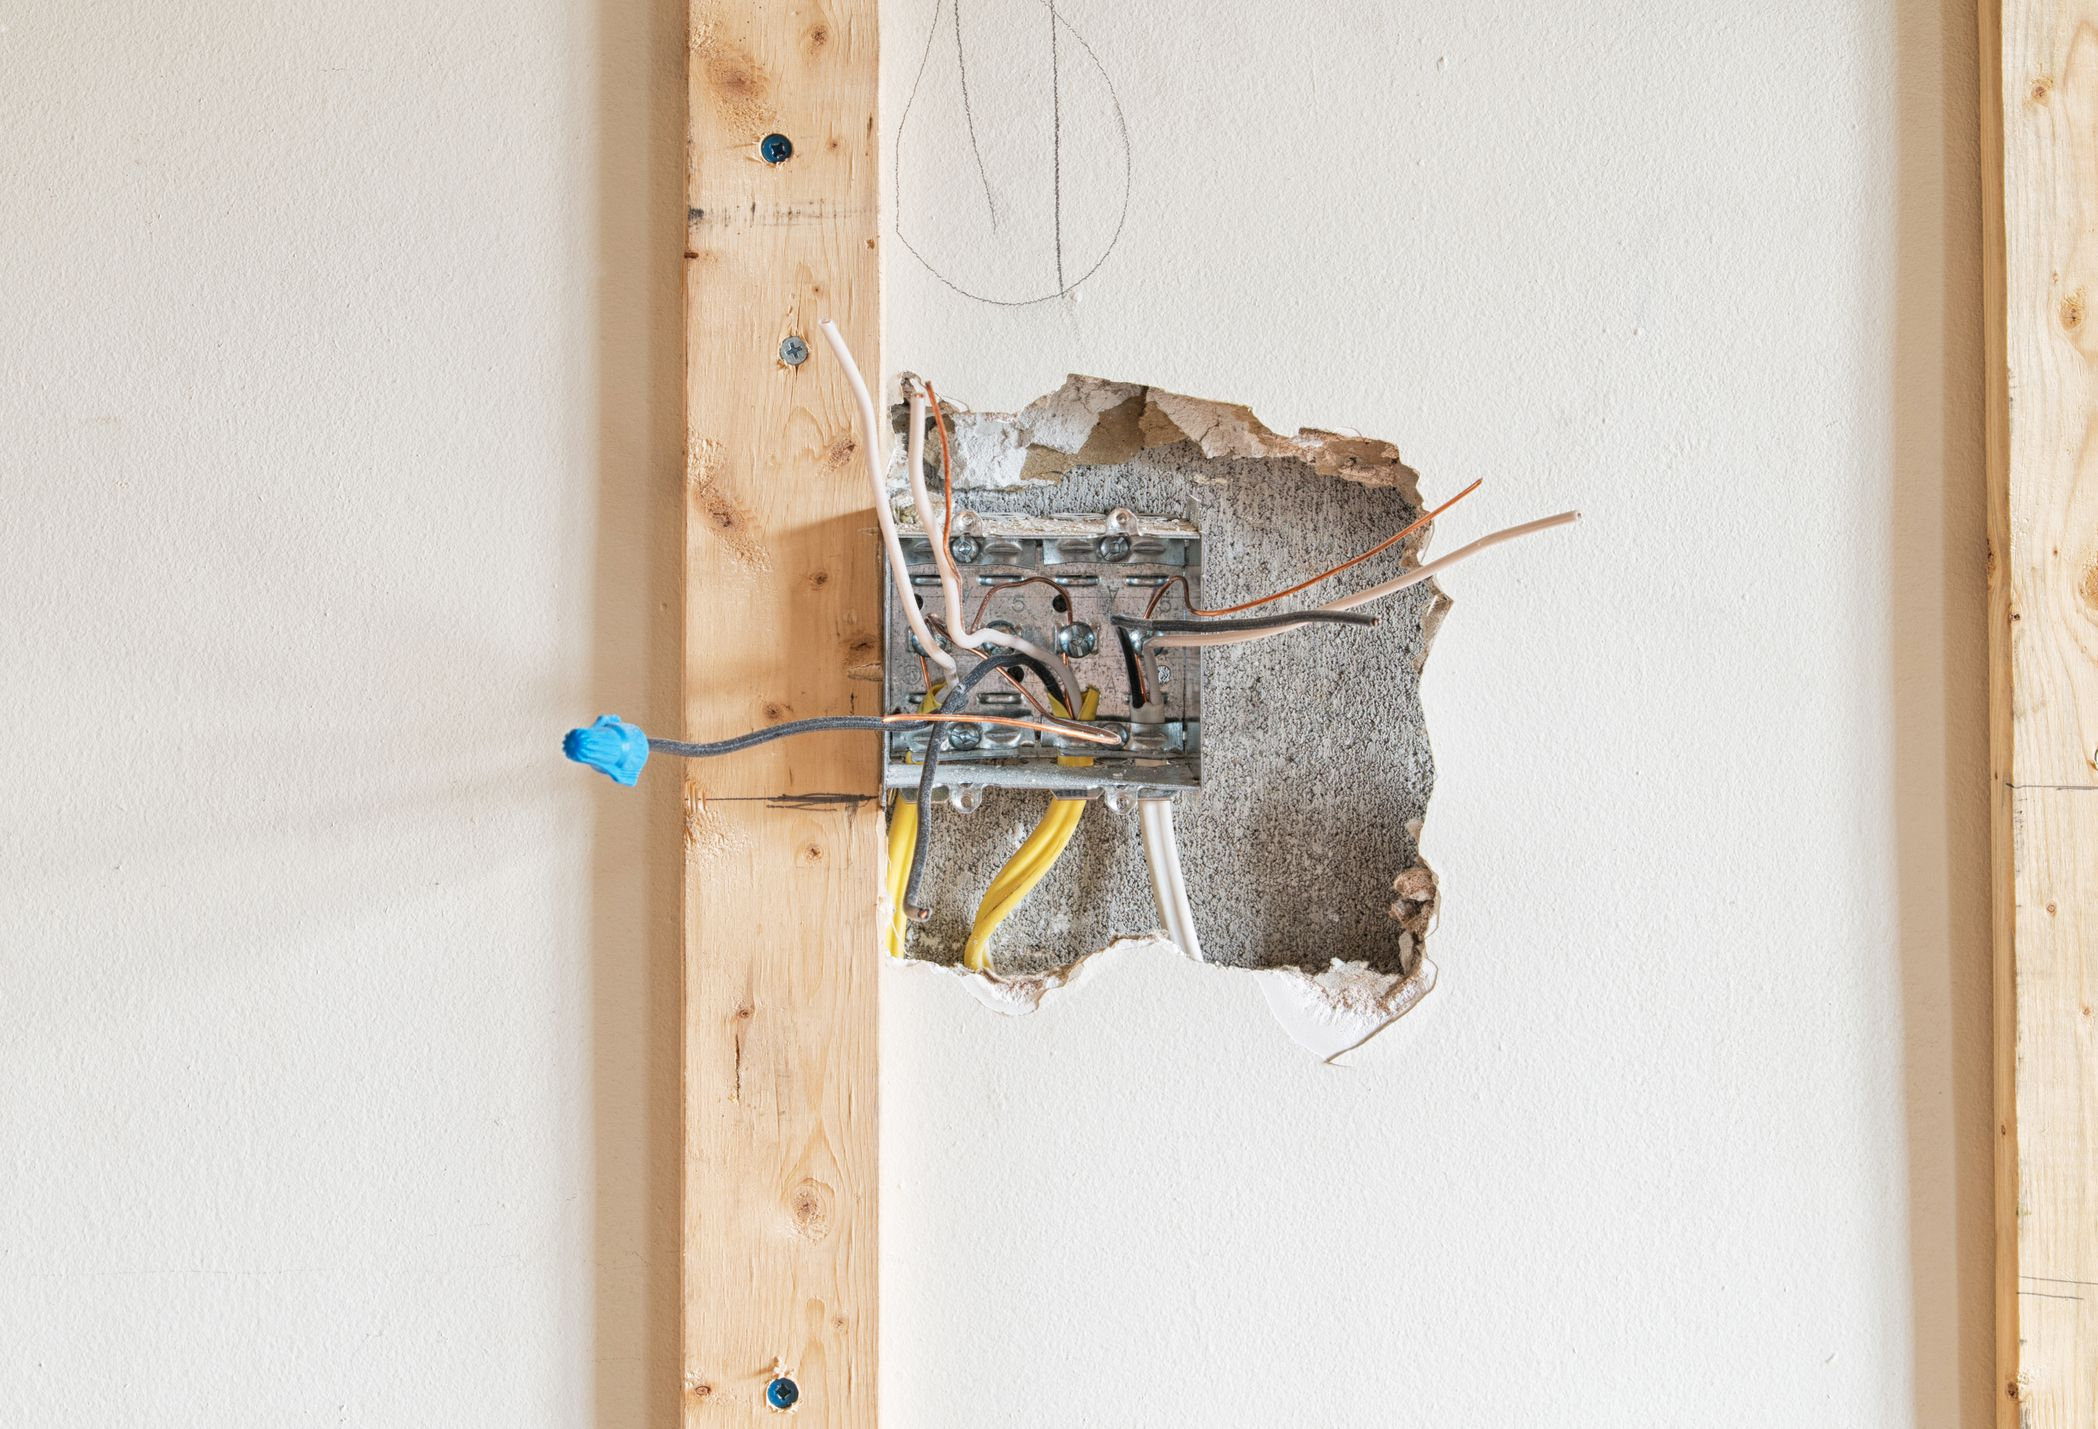 Install Electrical Wires In Closed Walls